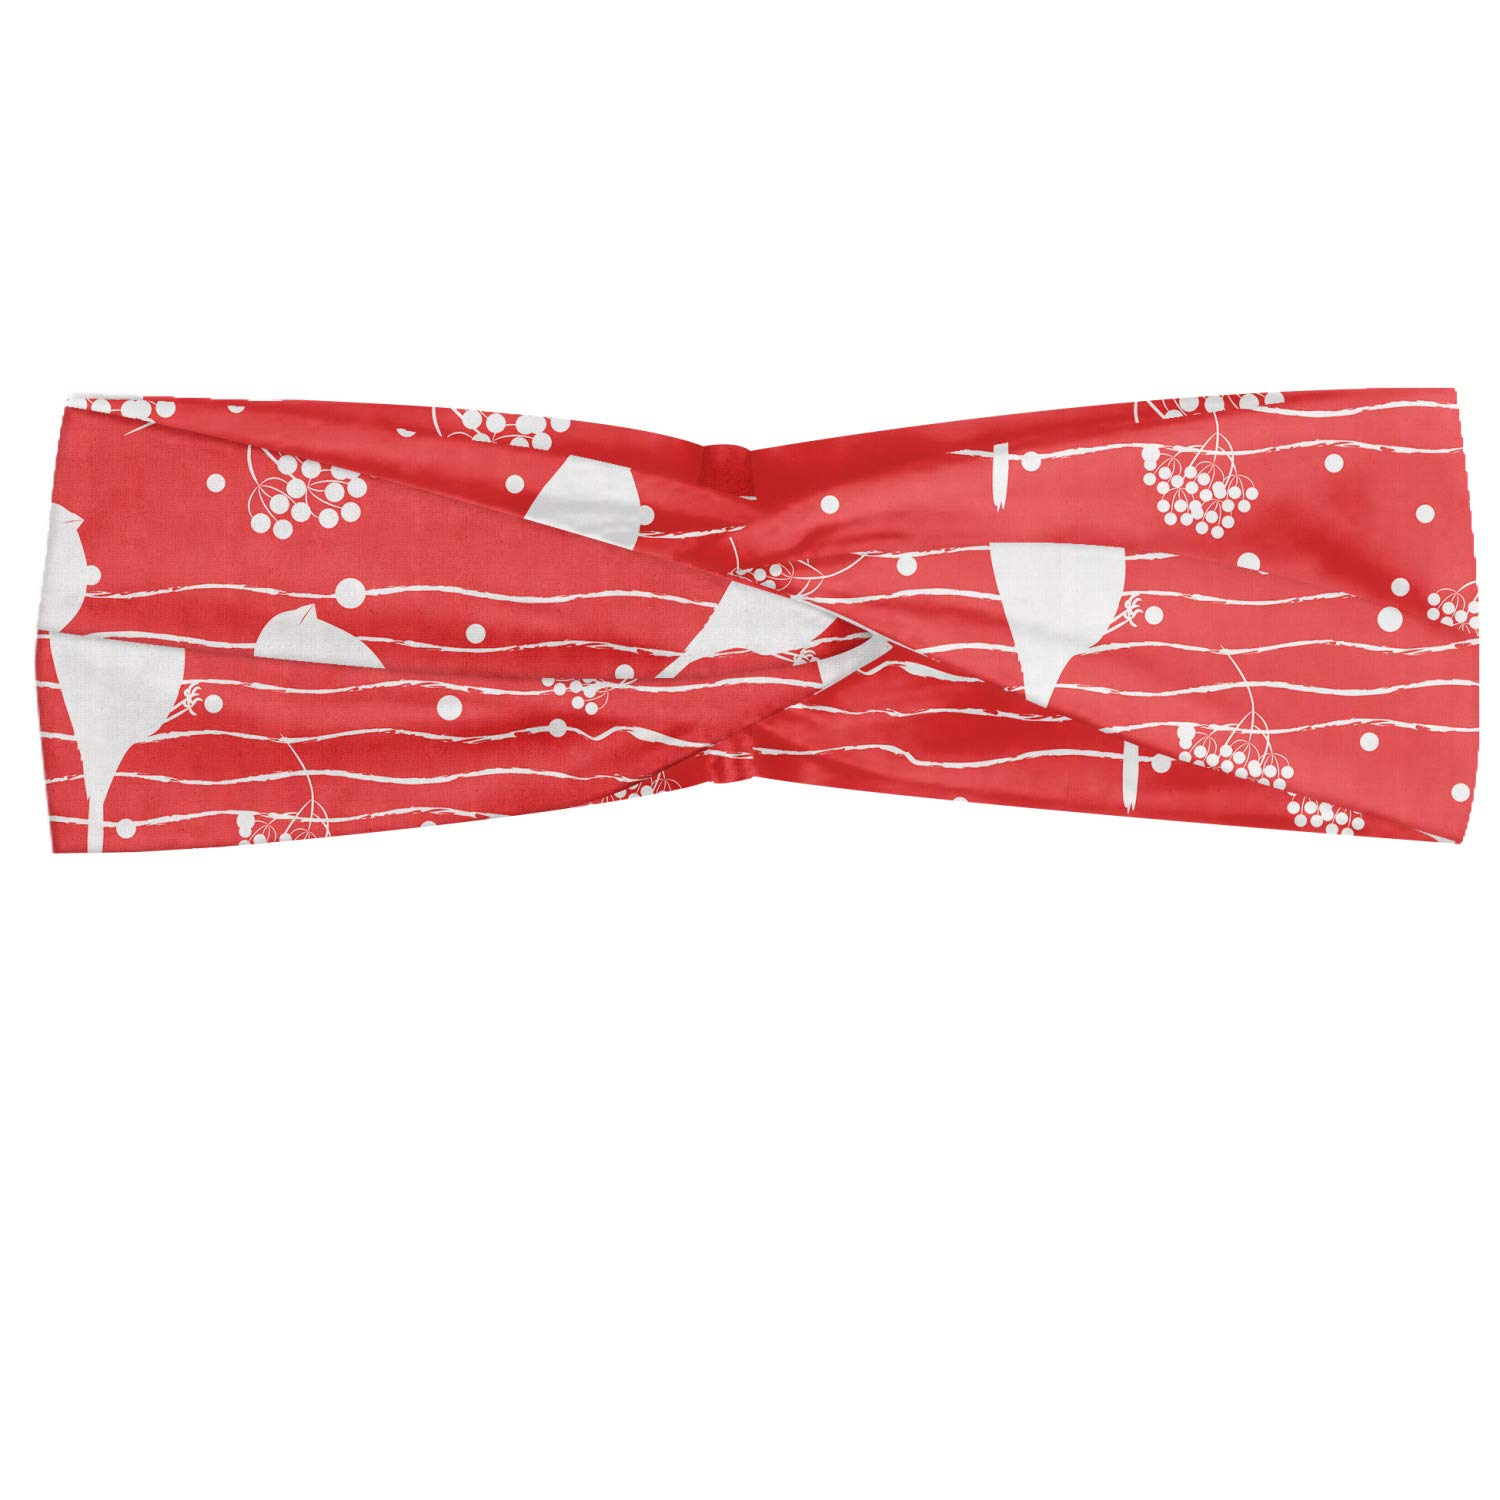 Ambesonne Birds Headband, Bullfinch Silhouettes Sitting on Tree Branches with Forest Berry Illustration, Elastic and Soft Women's Bandana for Sports and Everyday Use, Dark Coral White